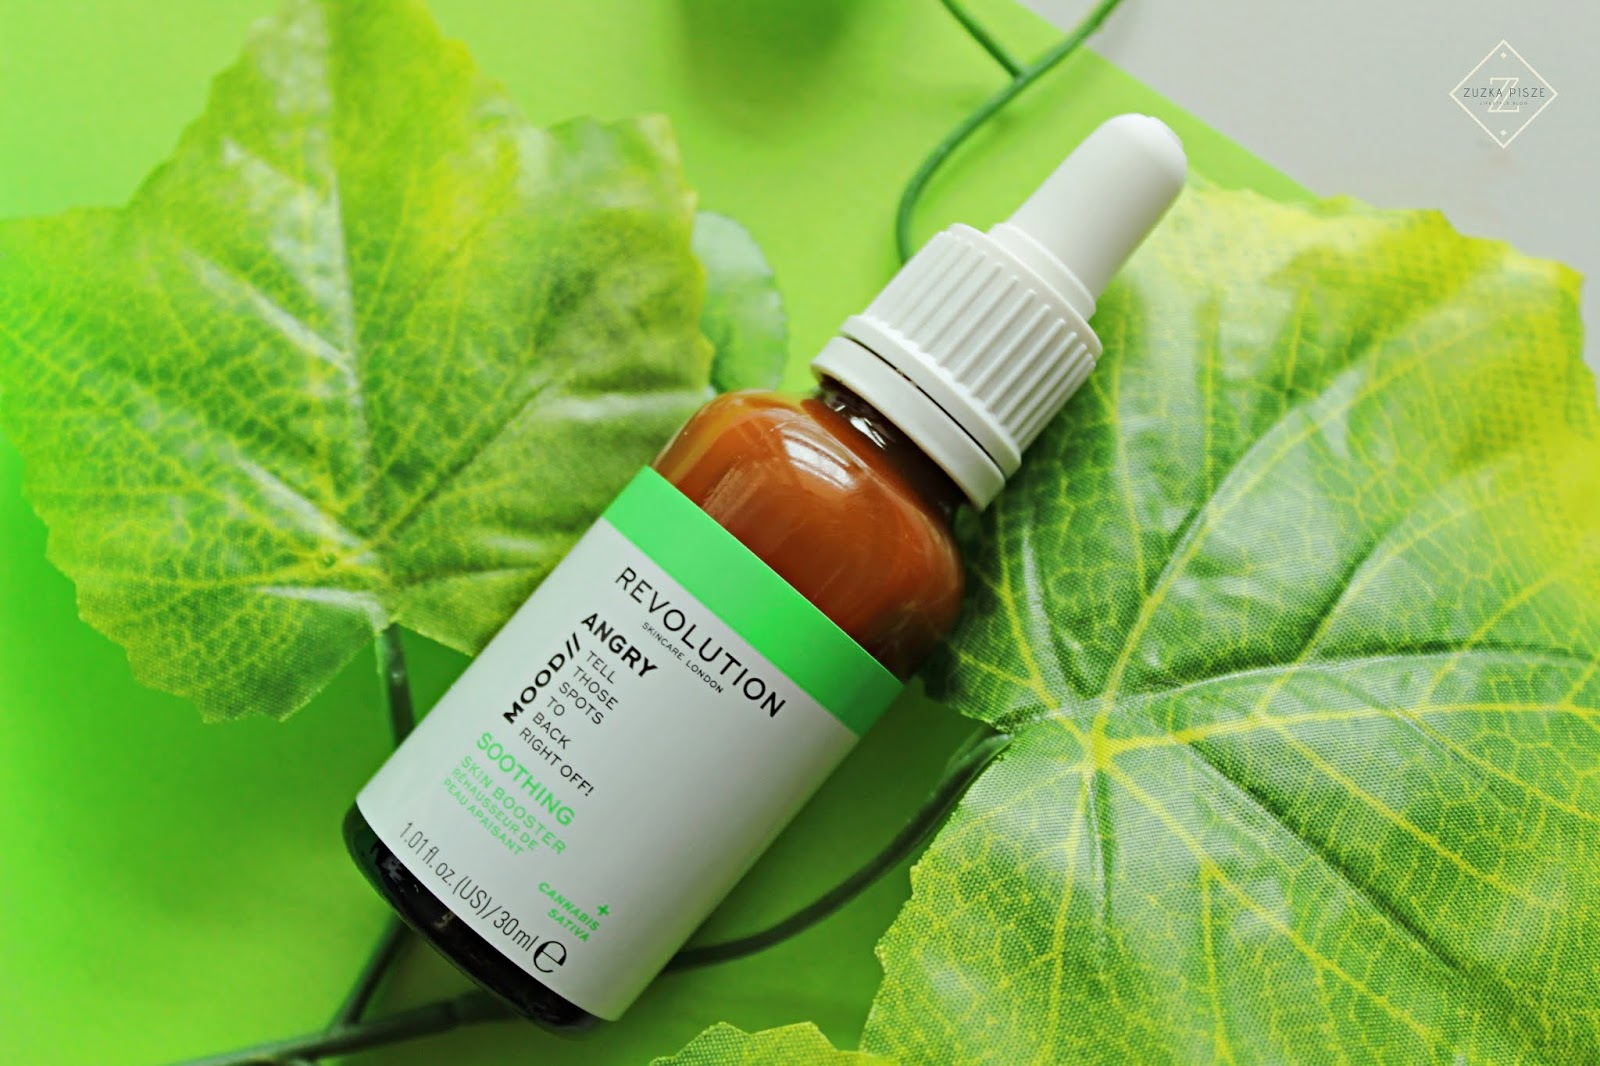 REVOLUTION SKINCARE - MOOD / ANGRY Skin Booster